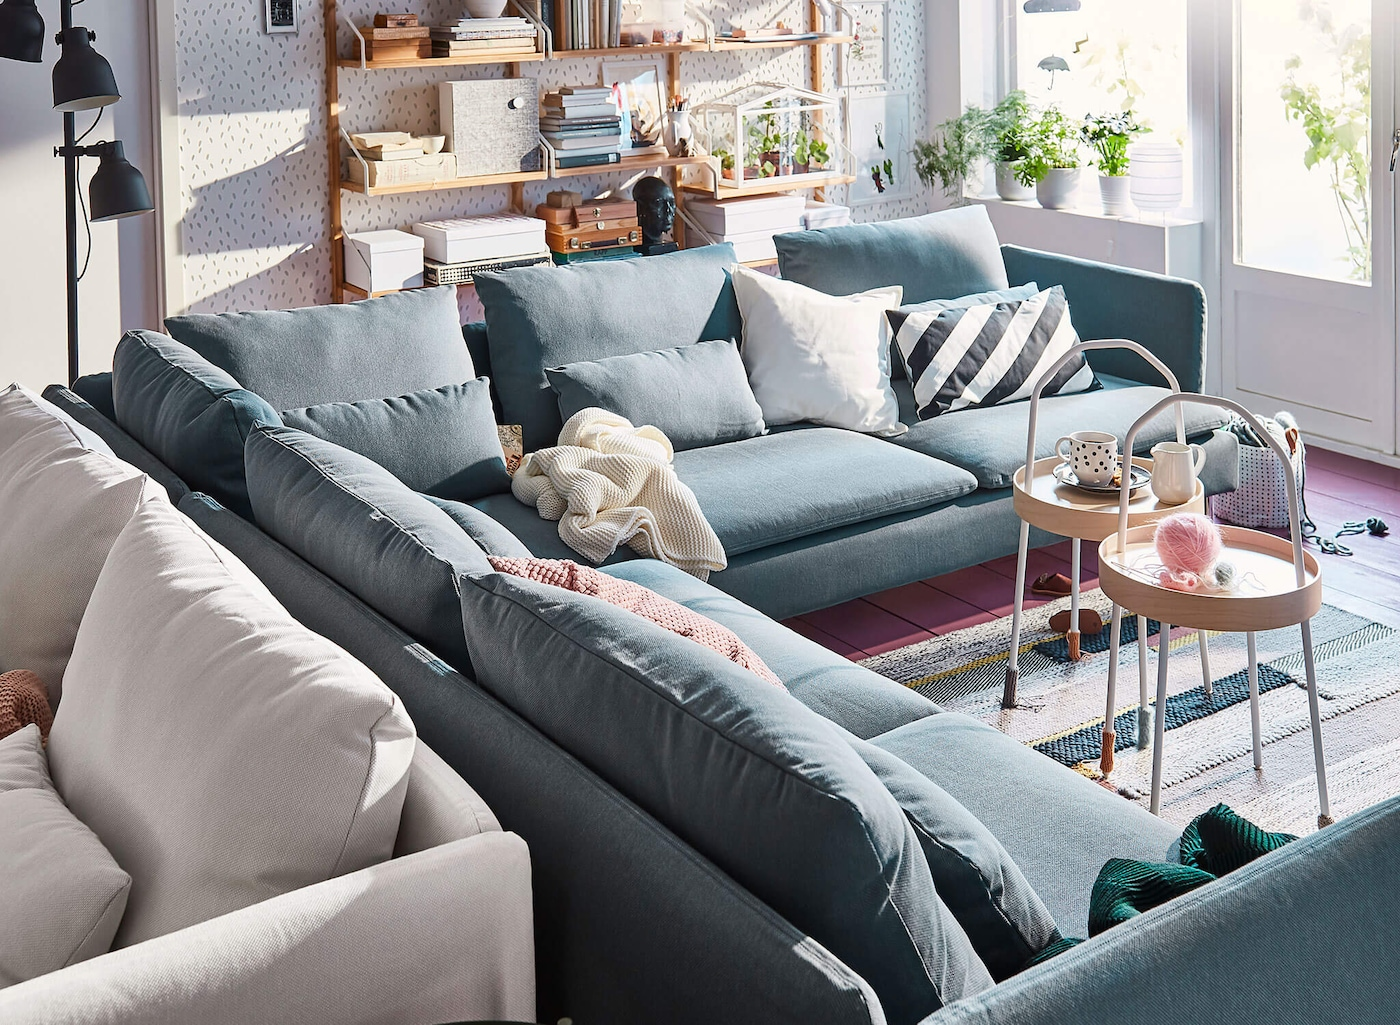 A turquoise corner sofa in a living room with white and black cushions and a throw blanket.